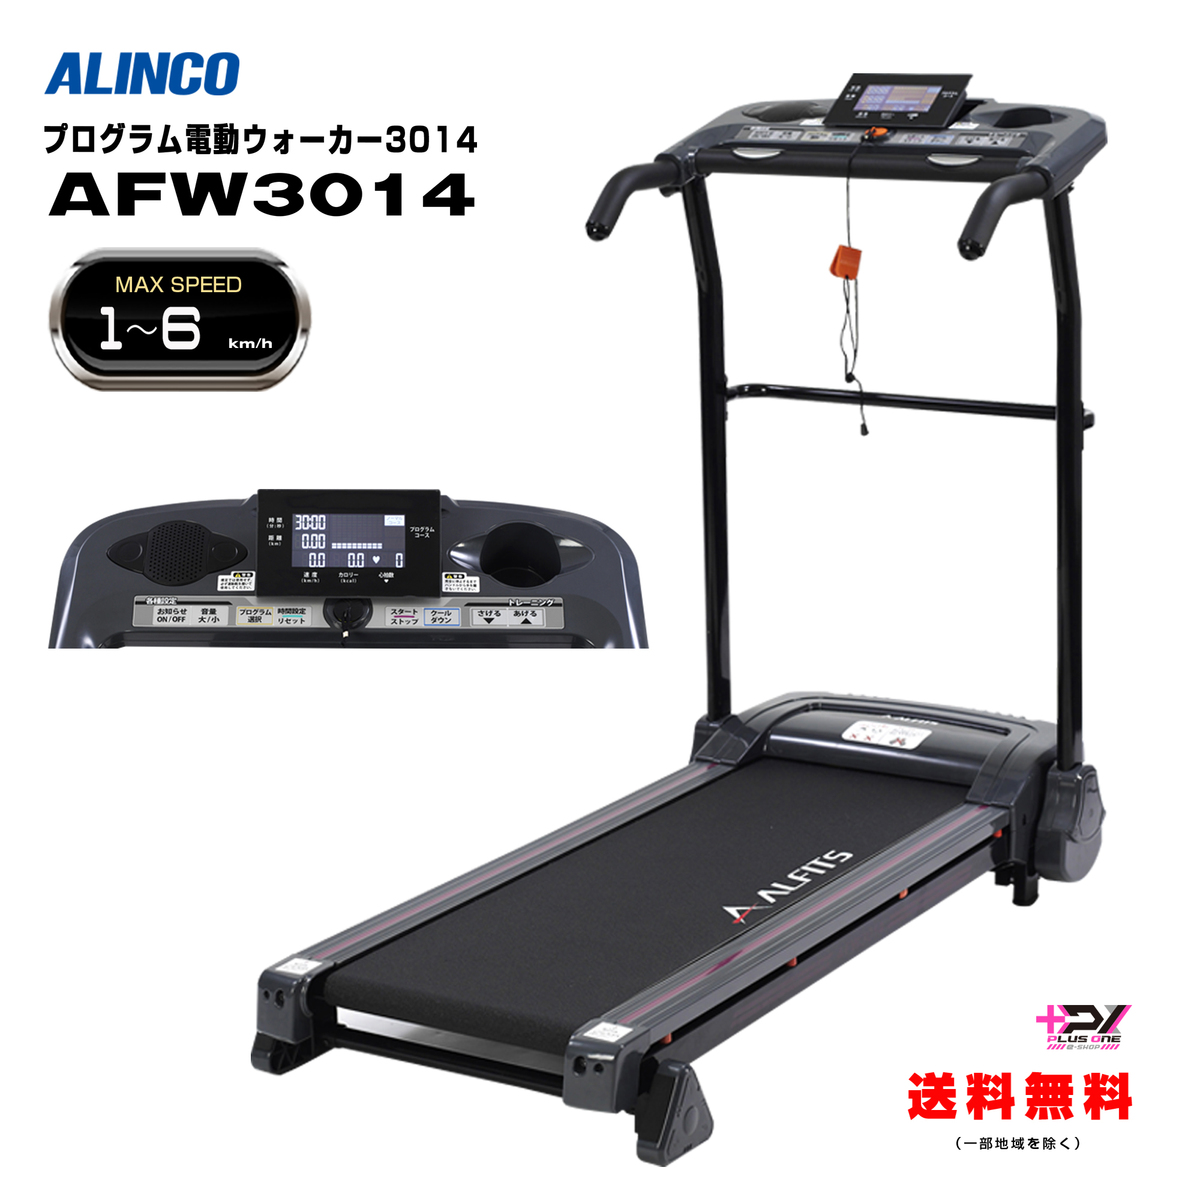 ALINCOAFW3014プログラム電動ウォーカー3014最高速度6km/h